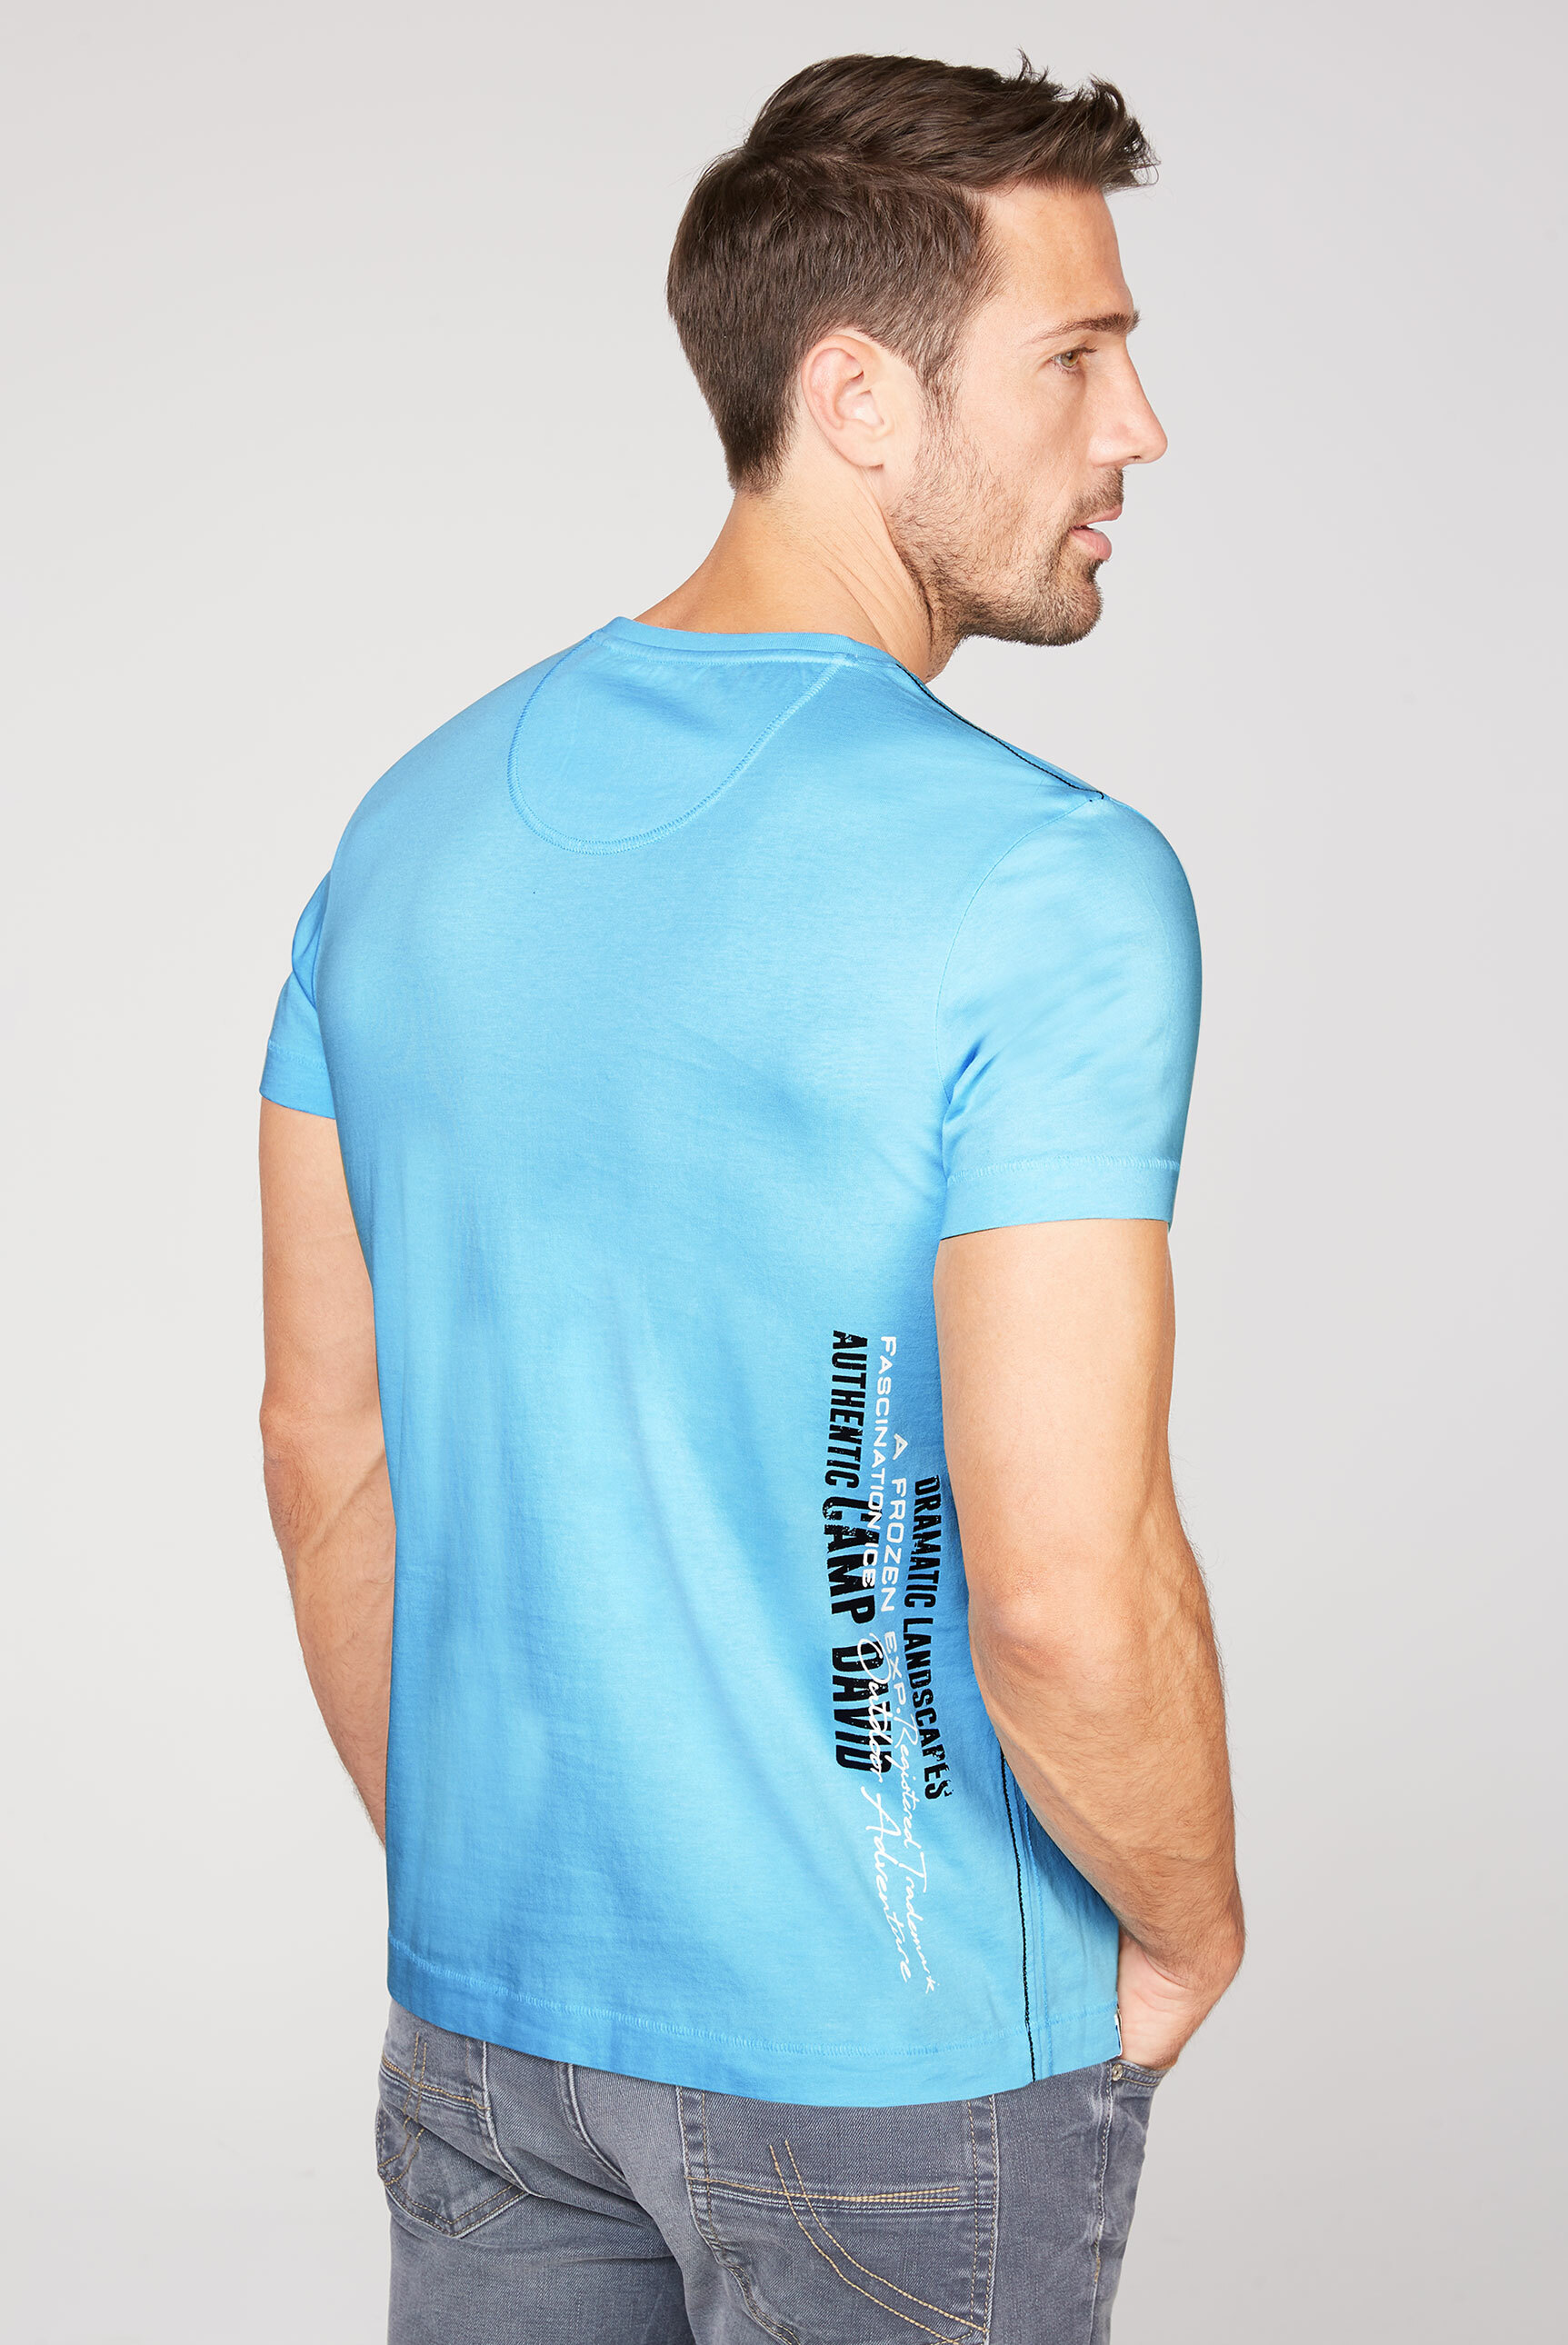 Rundhalsshirt mit Label-Applikationen